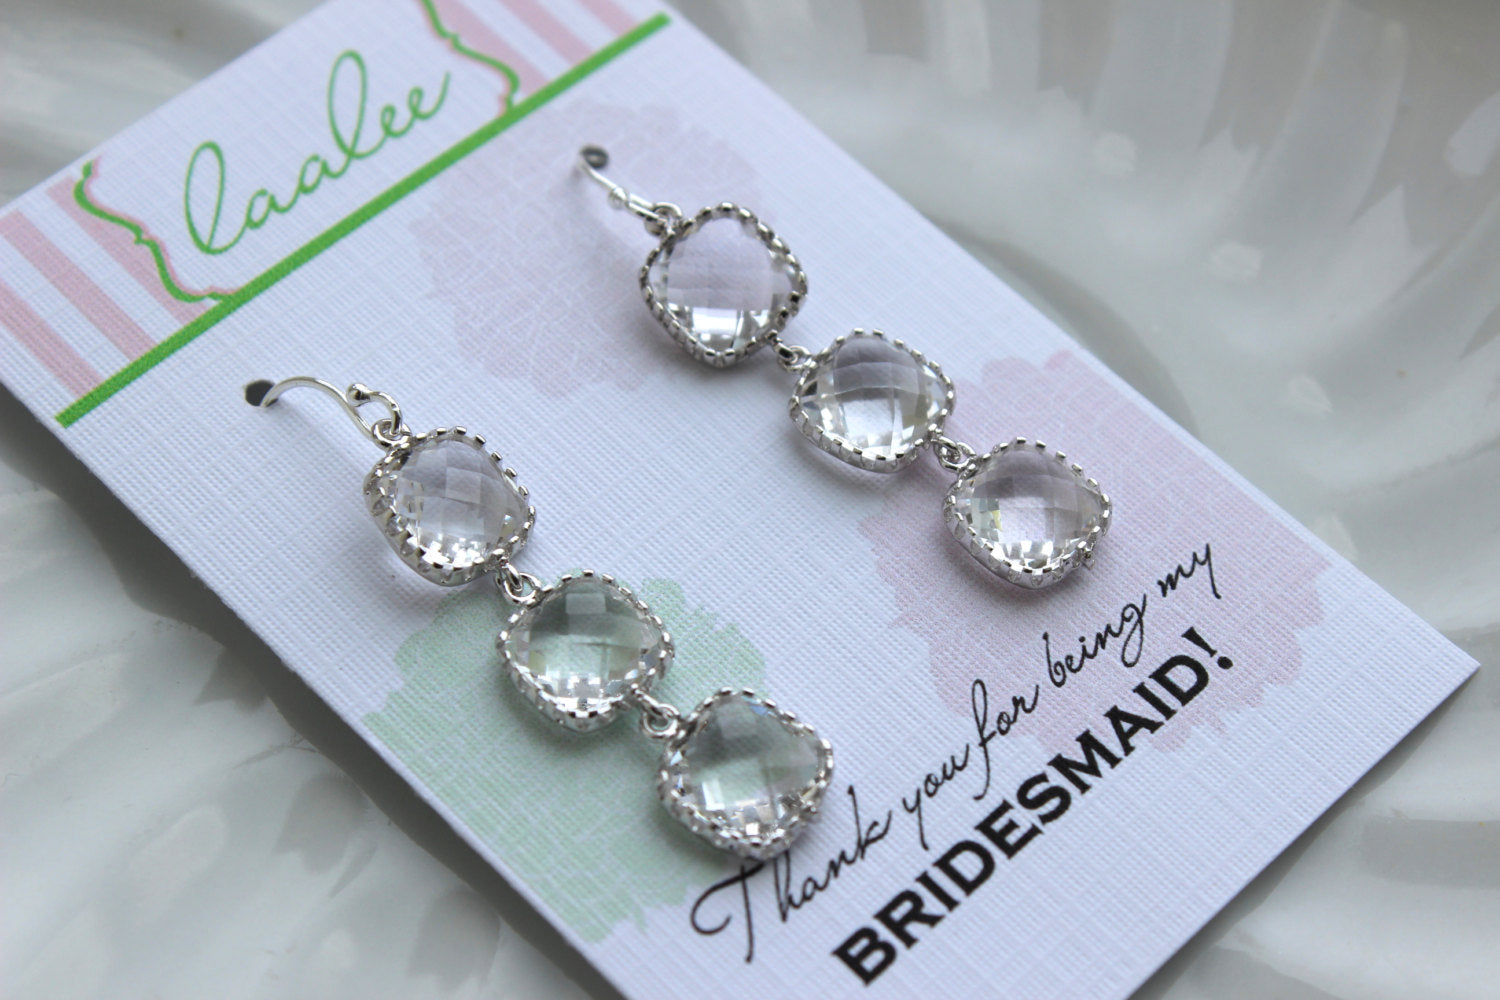 Square Silver Crystal Earrings Wedding Jewelry Crystal Clear Bridesmaid Earrings Bridesmaid Gift Bridal Jewelry Personalized Thank You Note